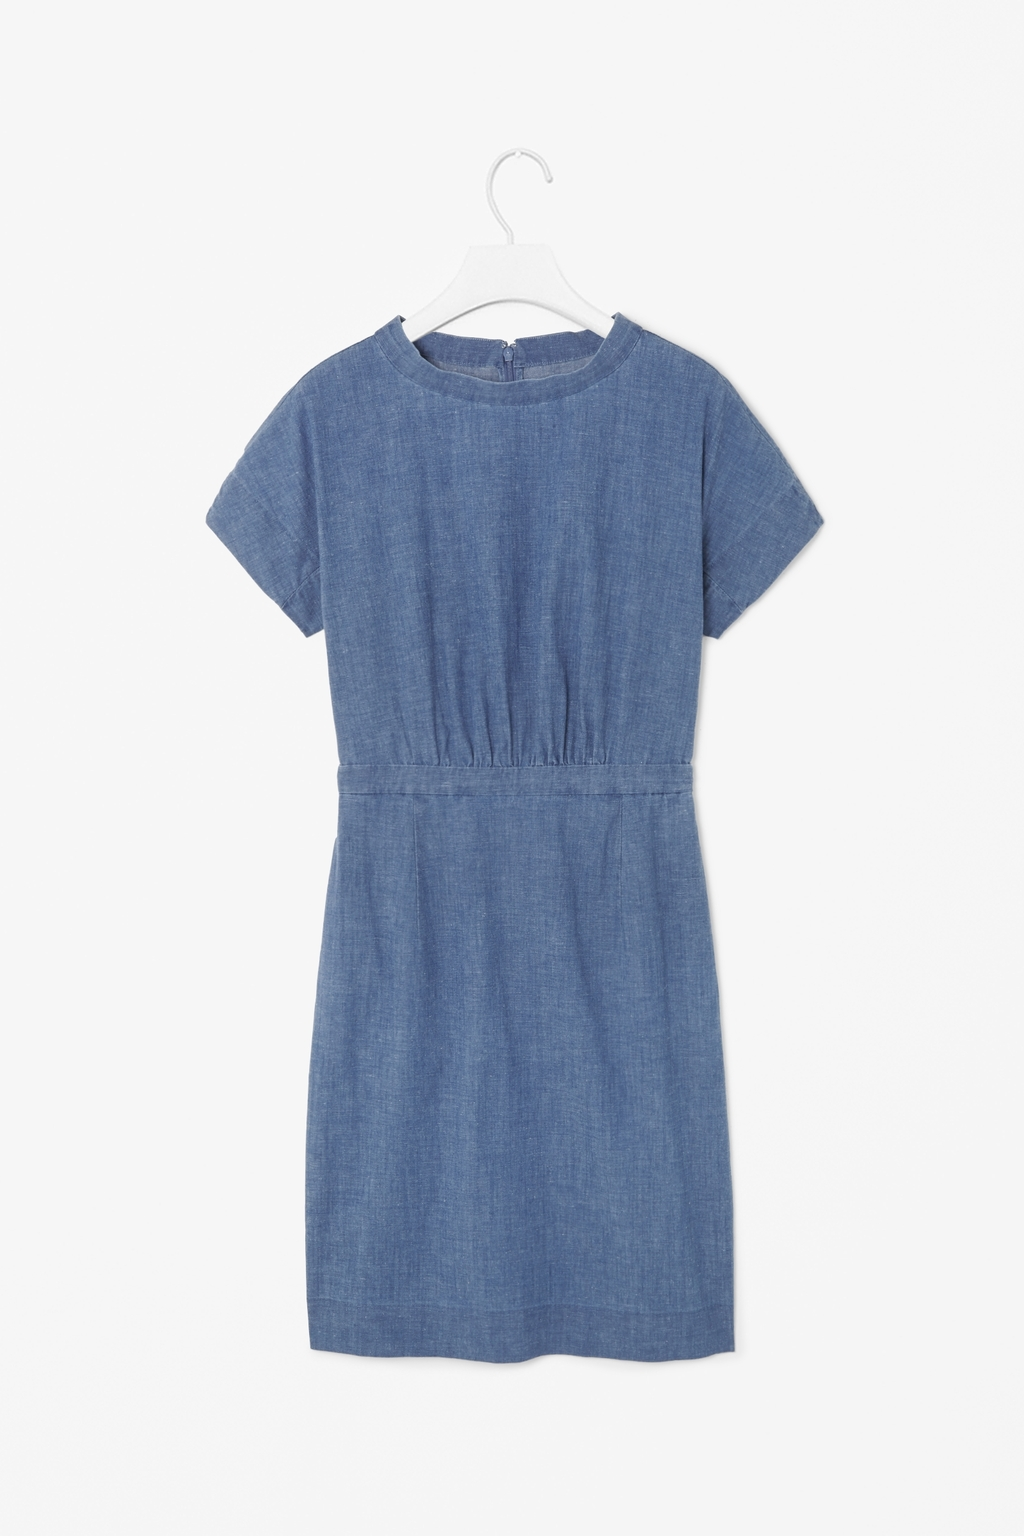 Denim Dress - style: shift; length: mid thigh; fit: fitted at waist; pattern: plain; neckline: high neck; predominant colour: denim; occasions: casual, holiday, creative work; fibres: cotton - 100%; sleeve length: short sleeve; sleeve style: standard; texture group: denim; pattern type: fabric; season: s/s 2014